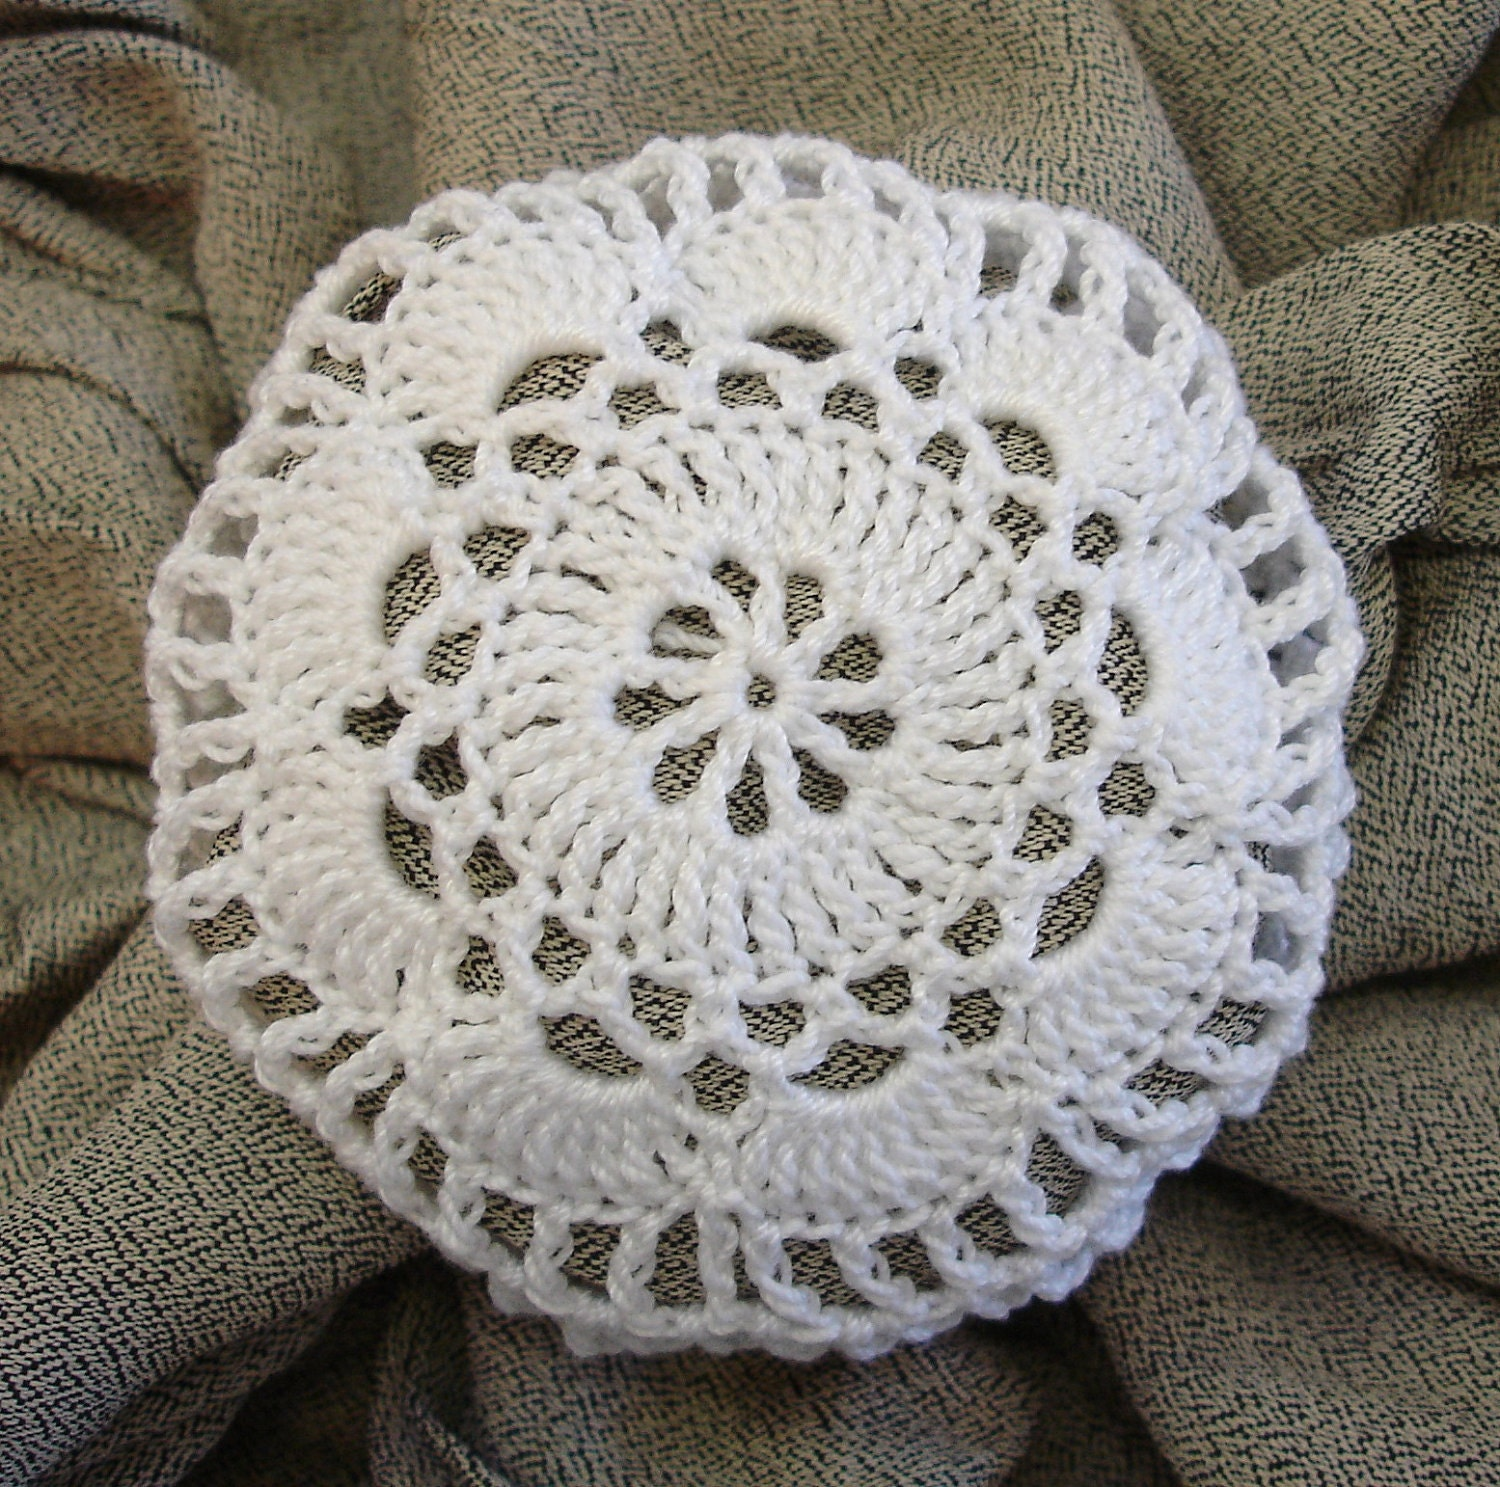 Crochet Hair Bun Cover : Hair Net / Bun Cover Crocheted White Flower Style by mydesertdeals